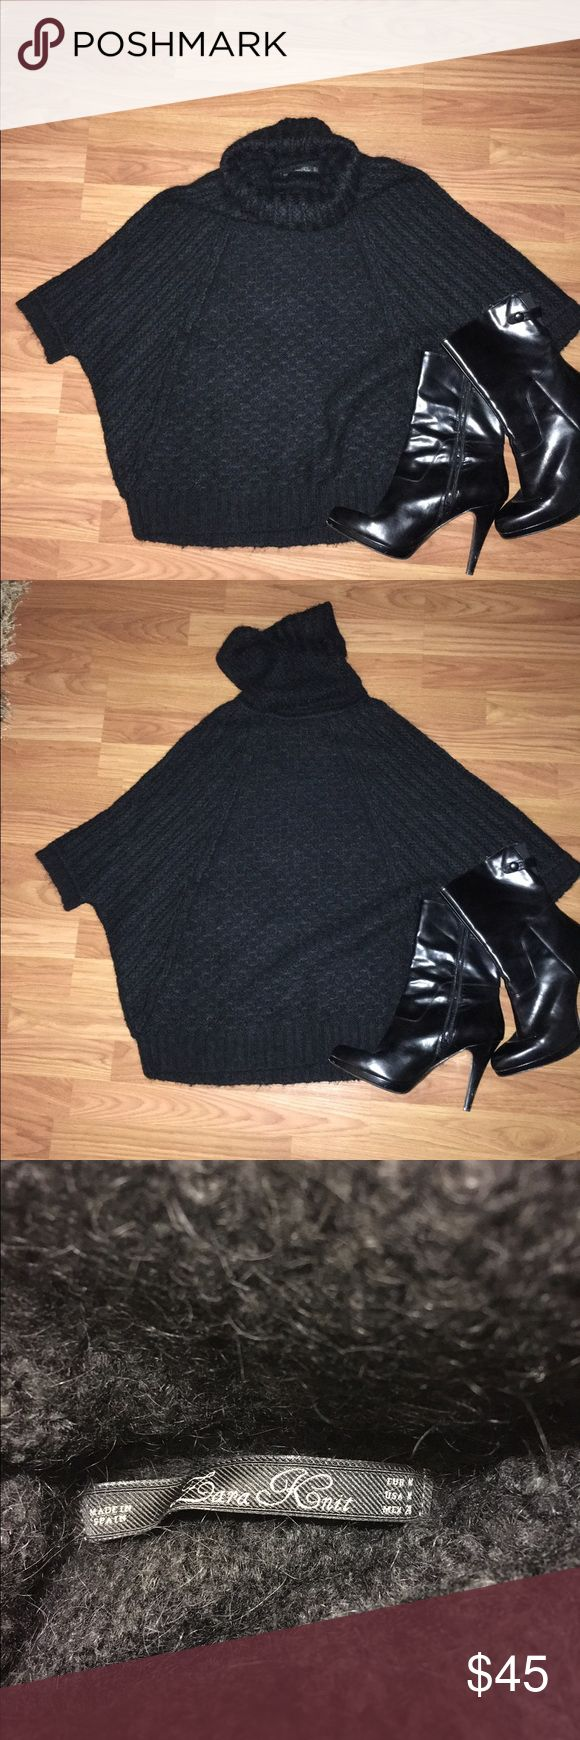 Zara Batwing Turtleneck Sweater Gorgeous Black Batwing T-Neck sweater. Size Medium. Zara knit. Retailed for 98. Sleeves reach to elbow length ( approx). Worn with layering shirt underneath. Gently used. Great for fall & winter! Price negotiable! Zara Sweaters Cowl & Turtlenecks